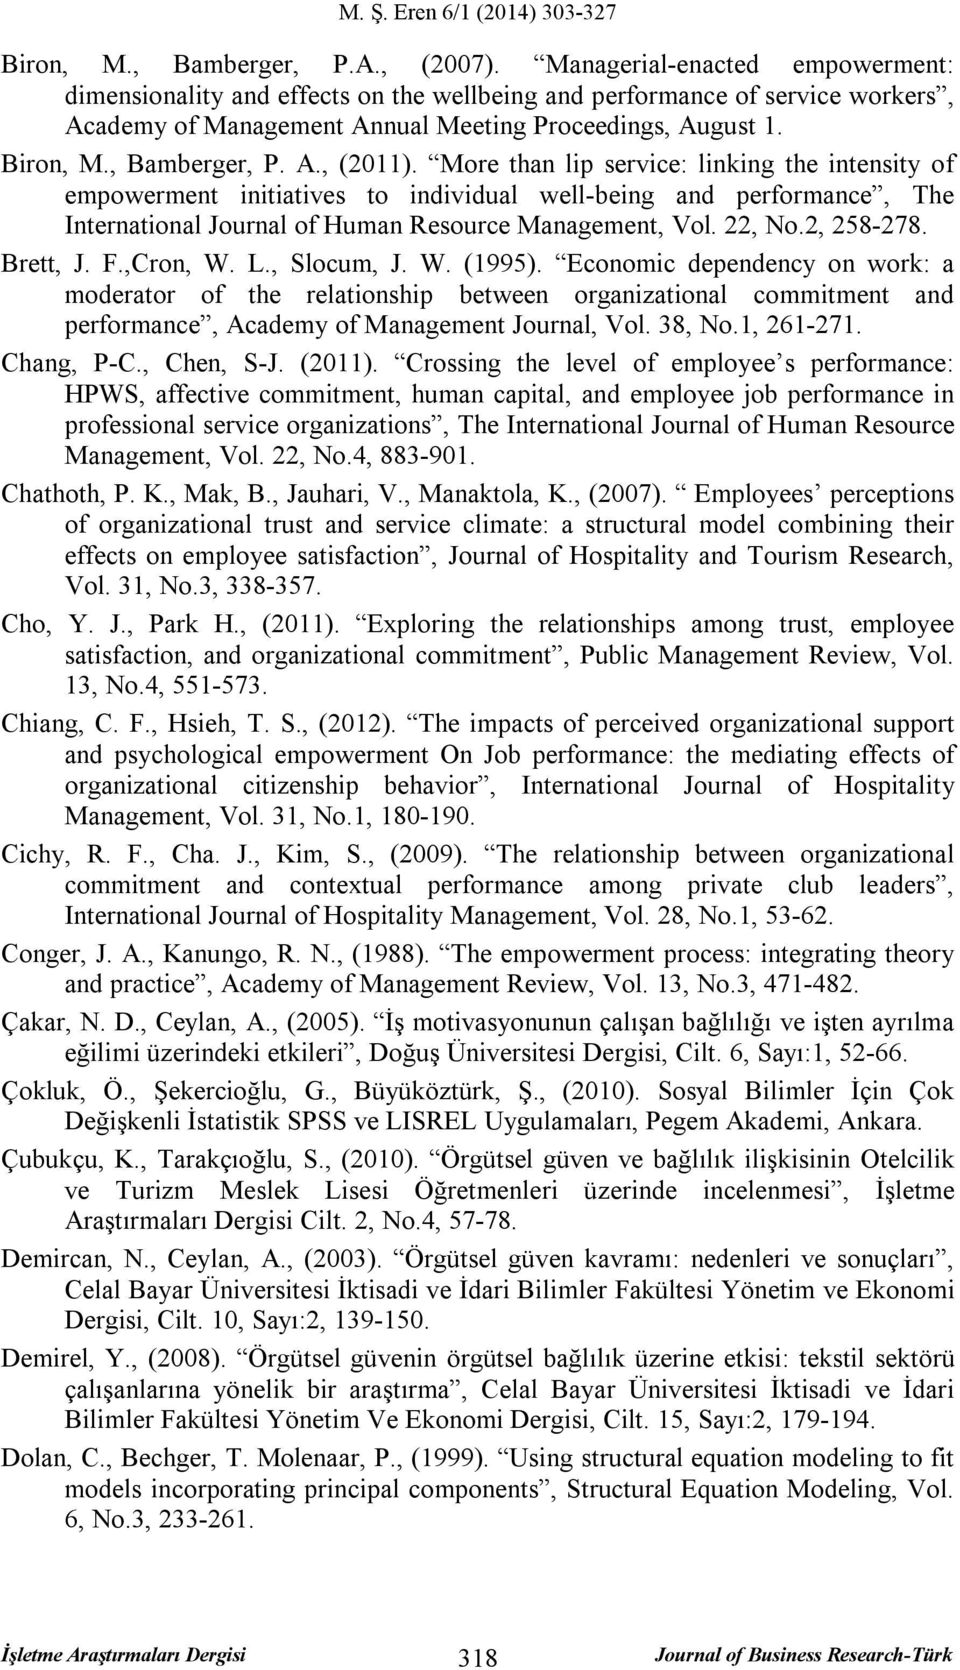 More than lip service: linking the intensity of empowerment initiatives to individual well-being and performance, The International Journal of Human Resource Management, Vol. 22, No.2, 258-278.